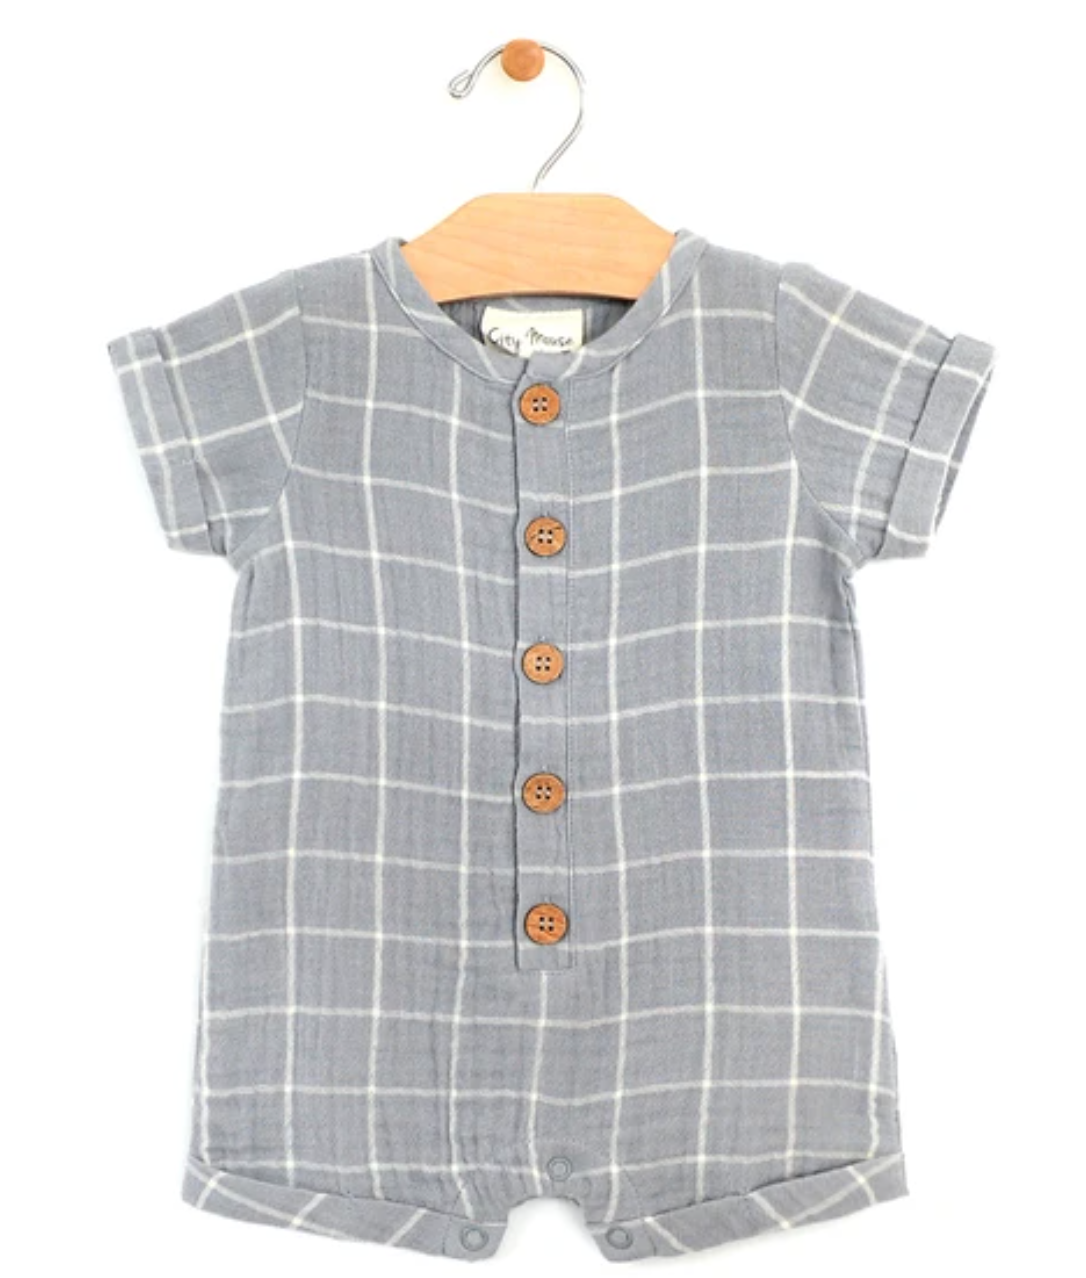 City Mouse Organic Cotton Woven Short Button Romper in Windowpane